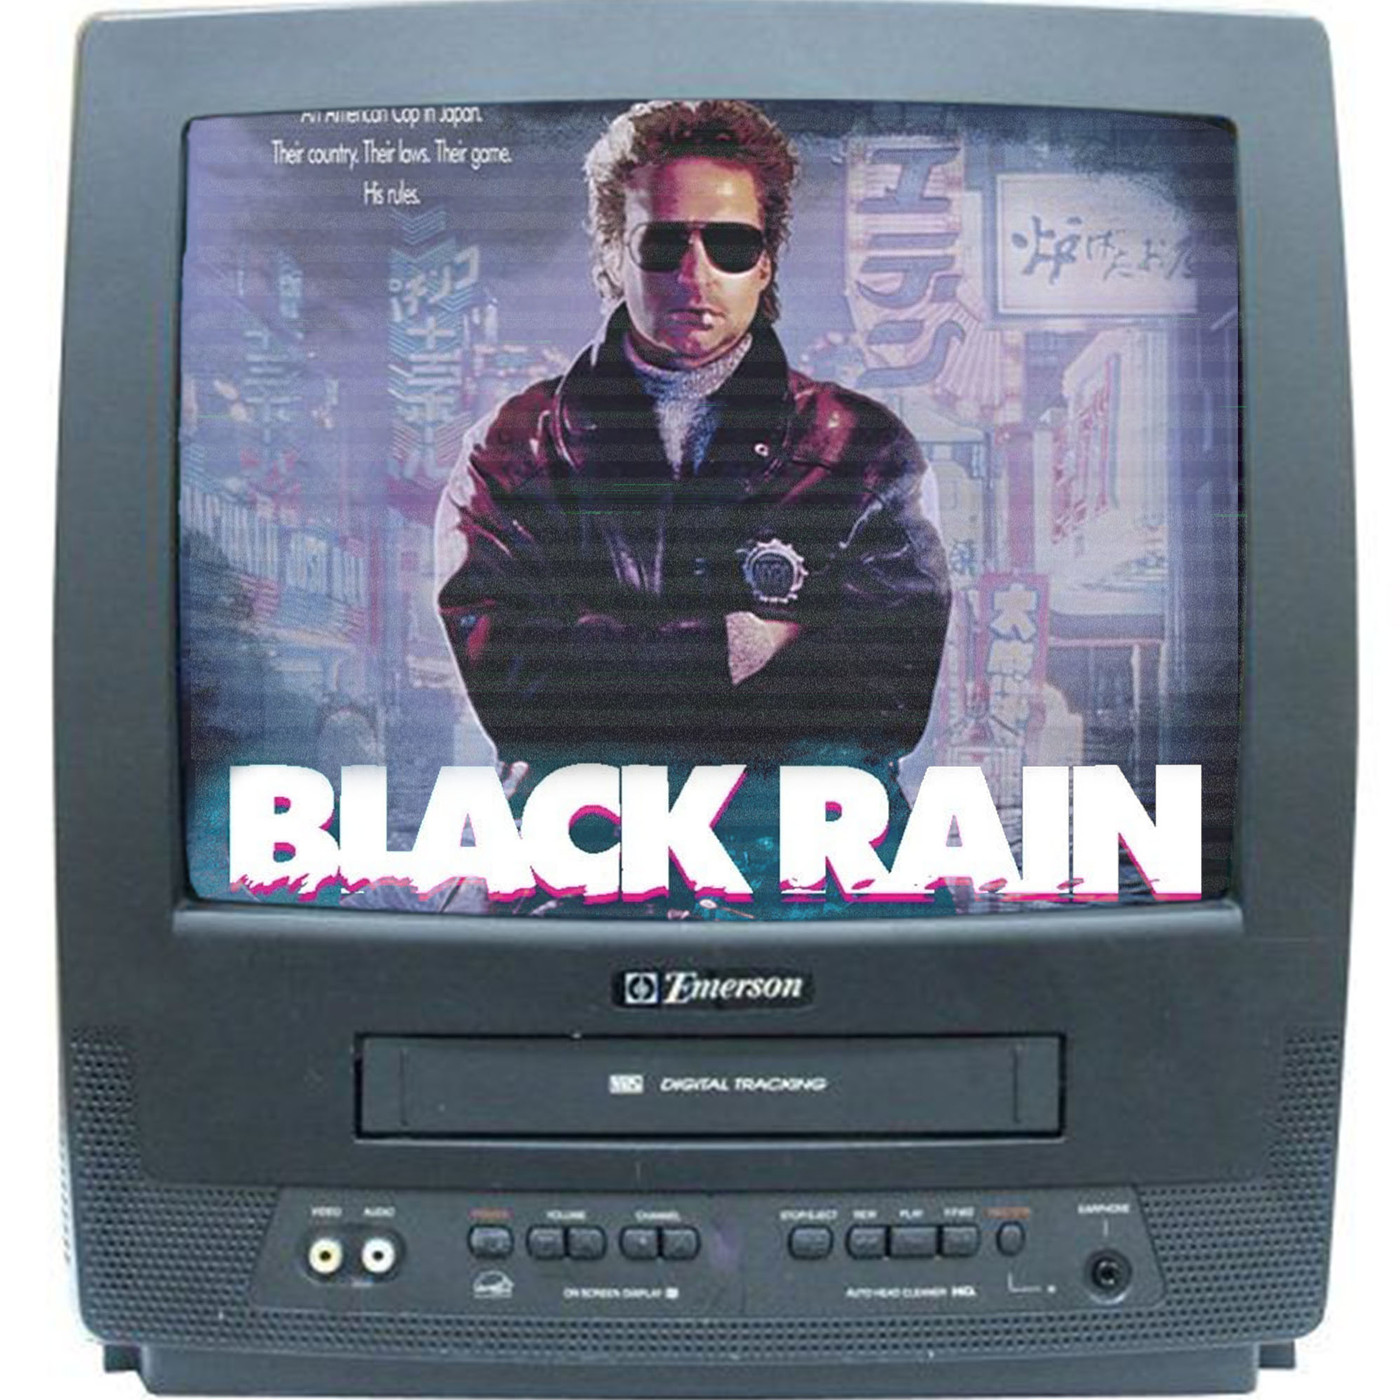 04x12 Remake a los 80, BLACK RAIN (1989, Ridley Scott)